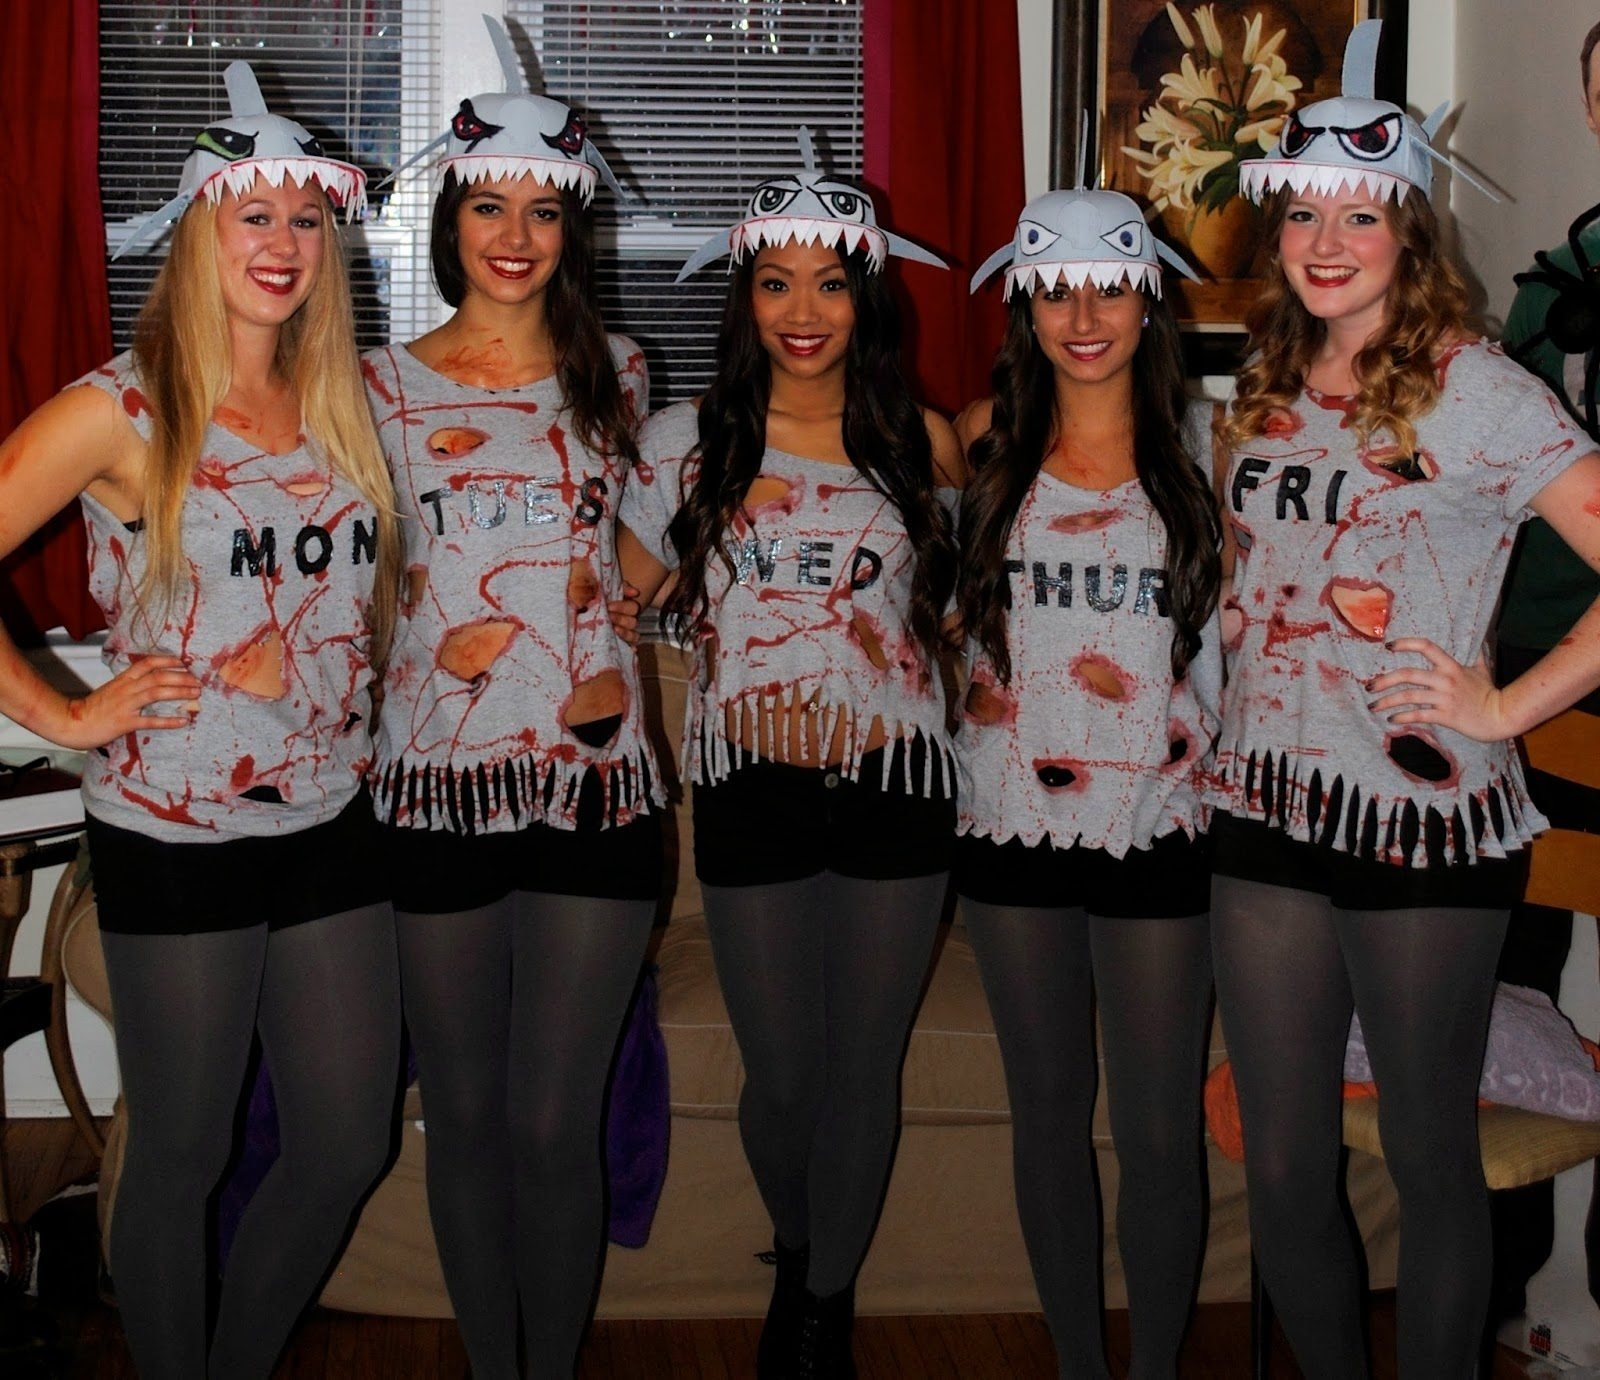 10 Cute Funny Group Halloween Costume Ideas this list of group halloween costume ideas will blow your mind 2 2020